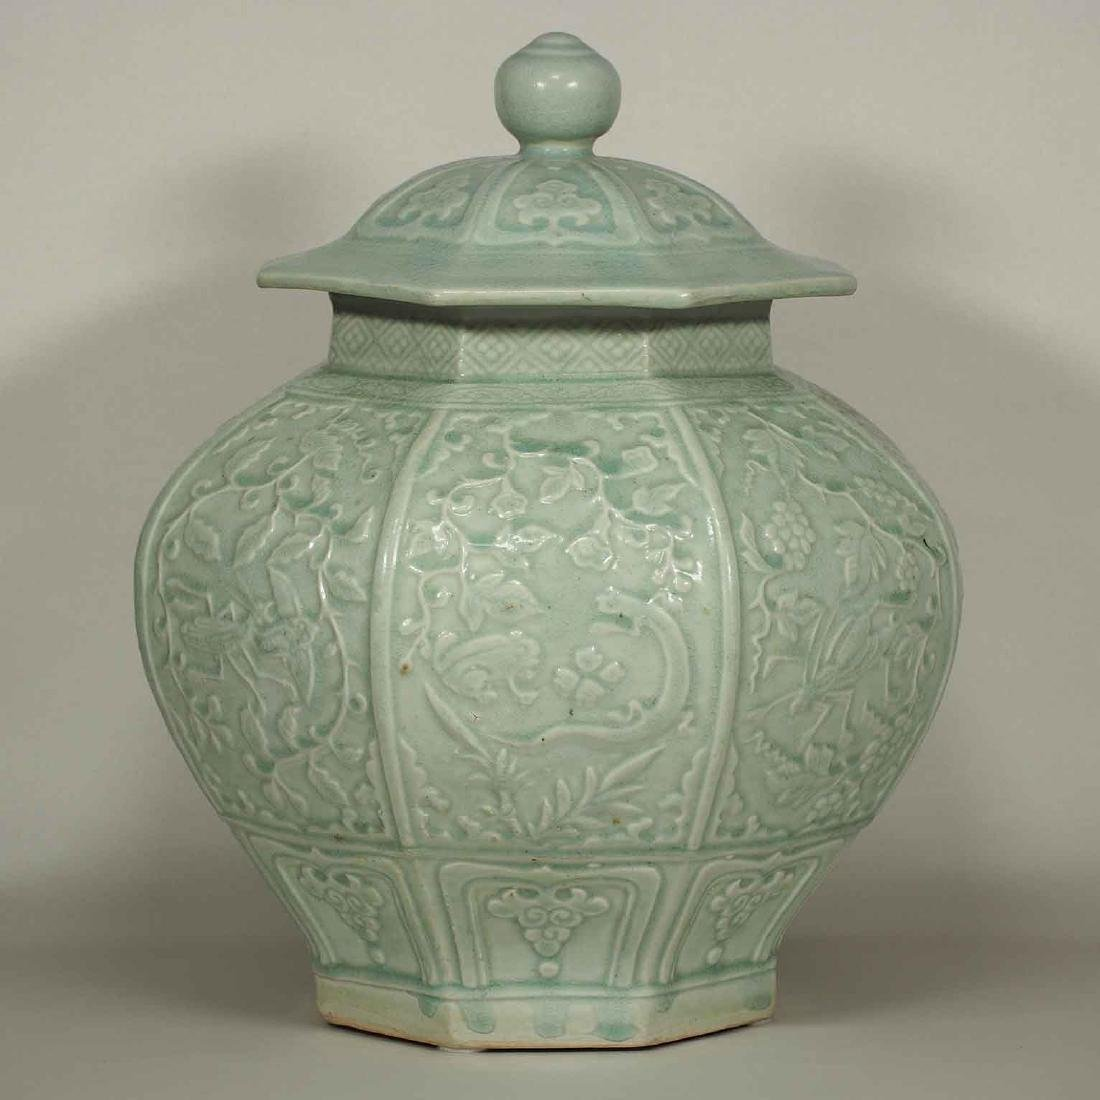 (TL) Octagonal Lidded Jar, late Yuan-early Ming Dynasty